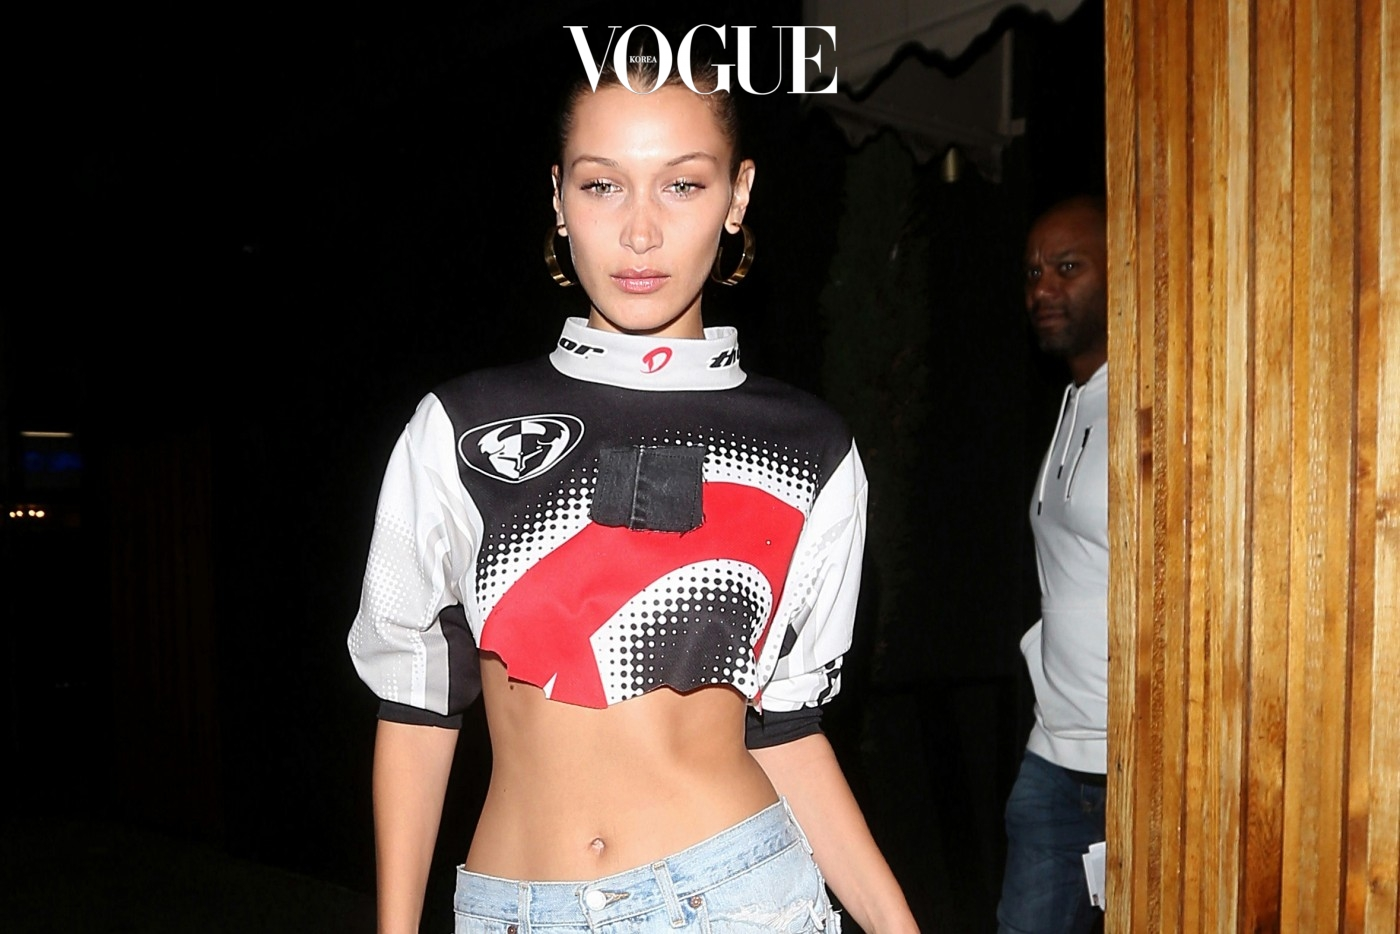 Bella Hadid shows off her midriff in a cut off shirt and jeans as she leaves the Nice Guy club after partying with Drake in West Hollywood. Bella arrived to the Nice Guy club at 1:20 A.M. and drake arrived at 12:45 A.M. Bella Hadid left from the front door of the Nice Guy club at 4 A.M. in the morning in one of Drake's SUV while Drake left from the back at the same time. As Bella gets into the car, you can clearly see her bra underneath her shirt.  Pictured: Bella Hadid Ref: SPL1523336  200617   Picture by: Photographer Group / Splash News  Splash News and Pictures Los Angeles:310-821-2666 New York:212-619-2666 London:870-934-2666 photodesk@splashnews.com